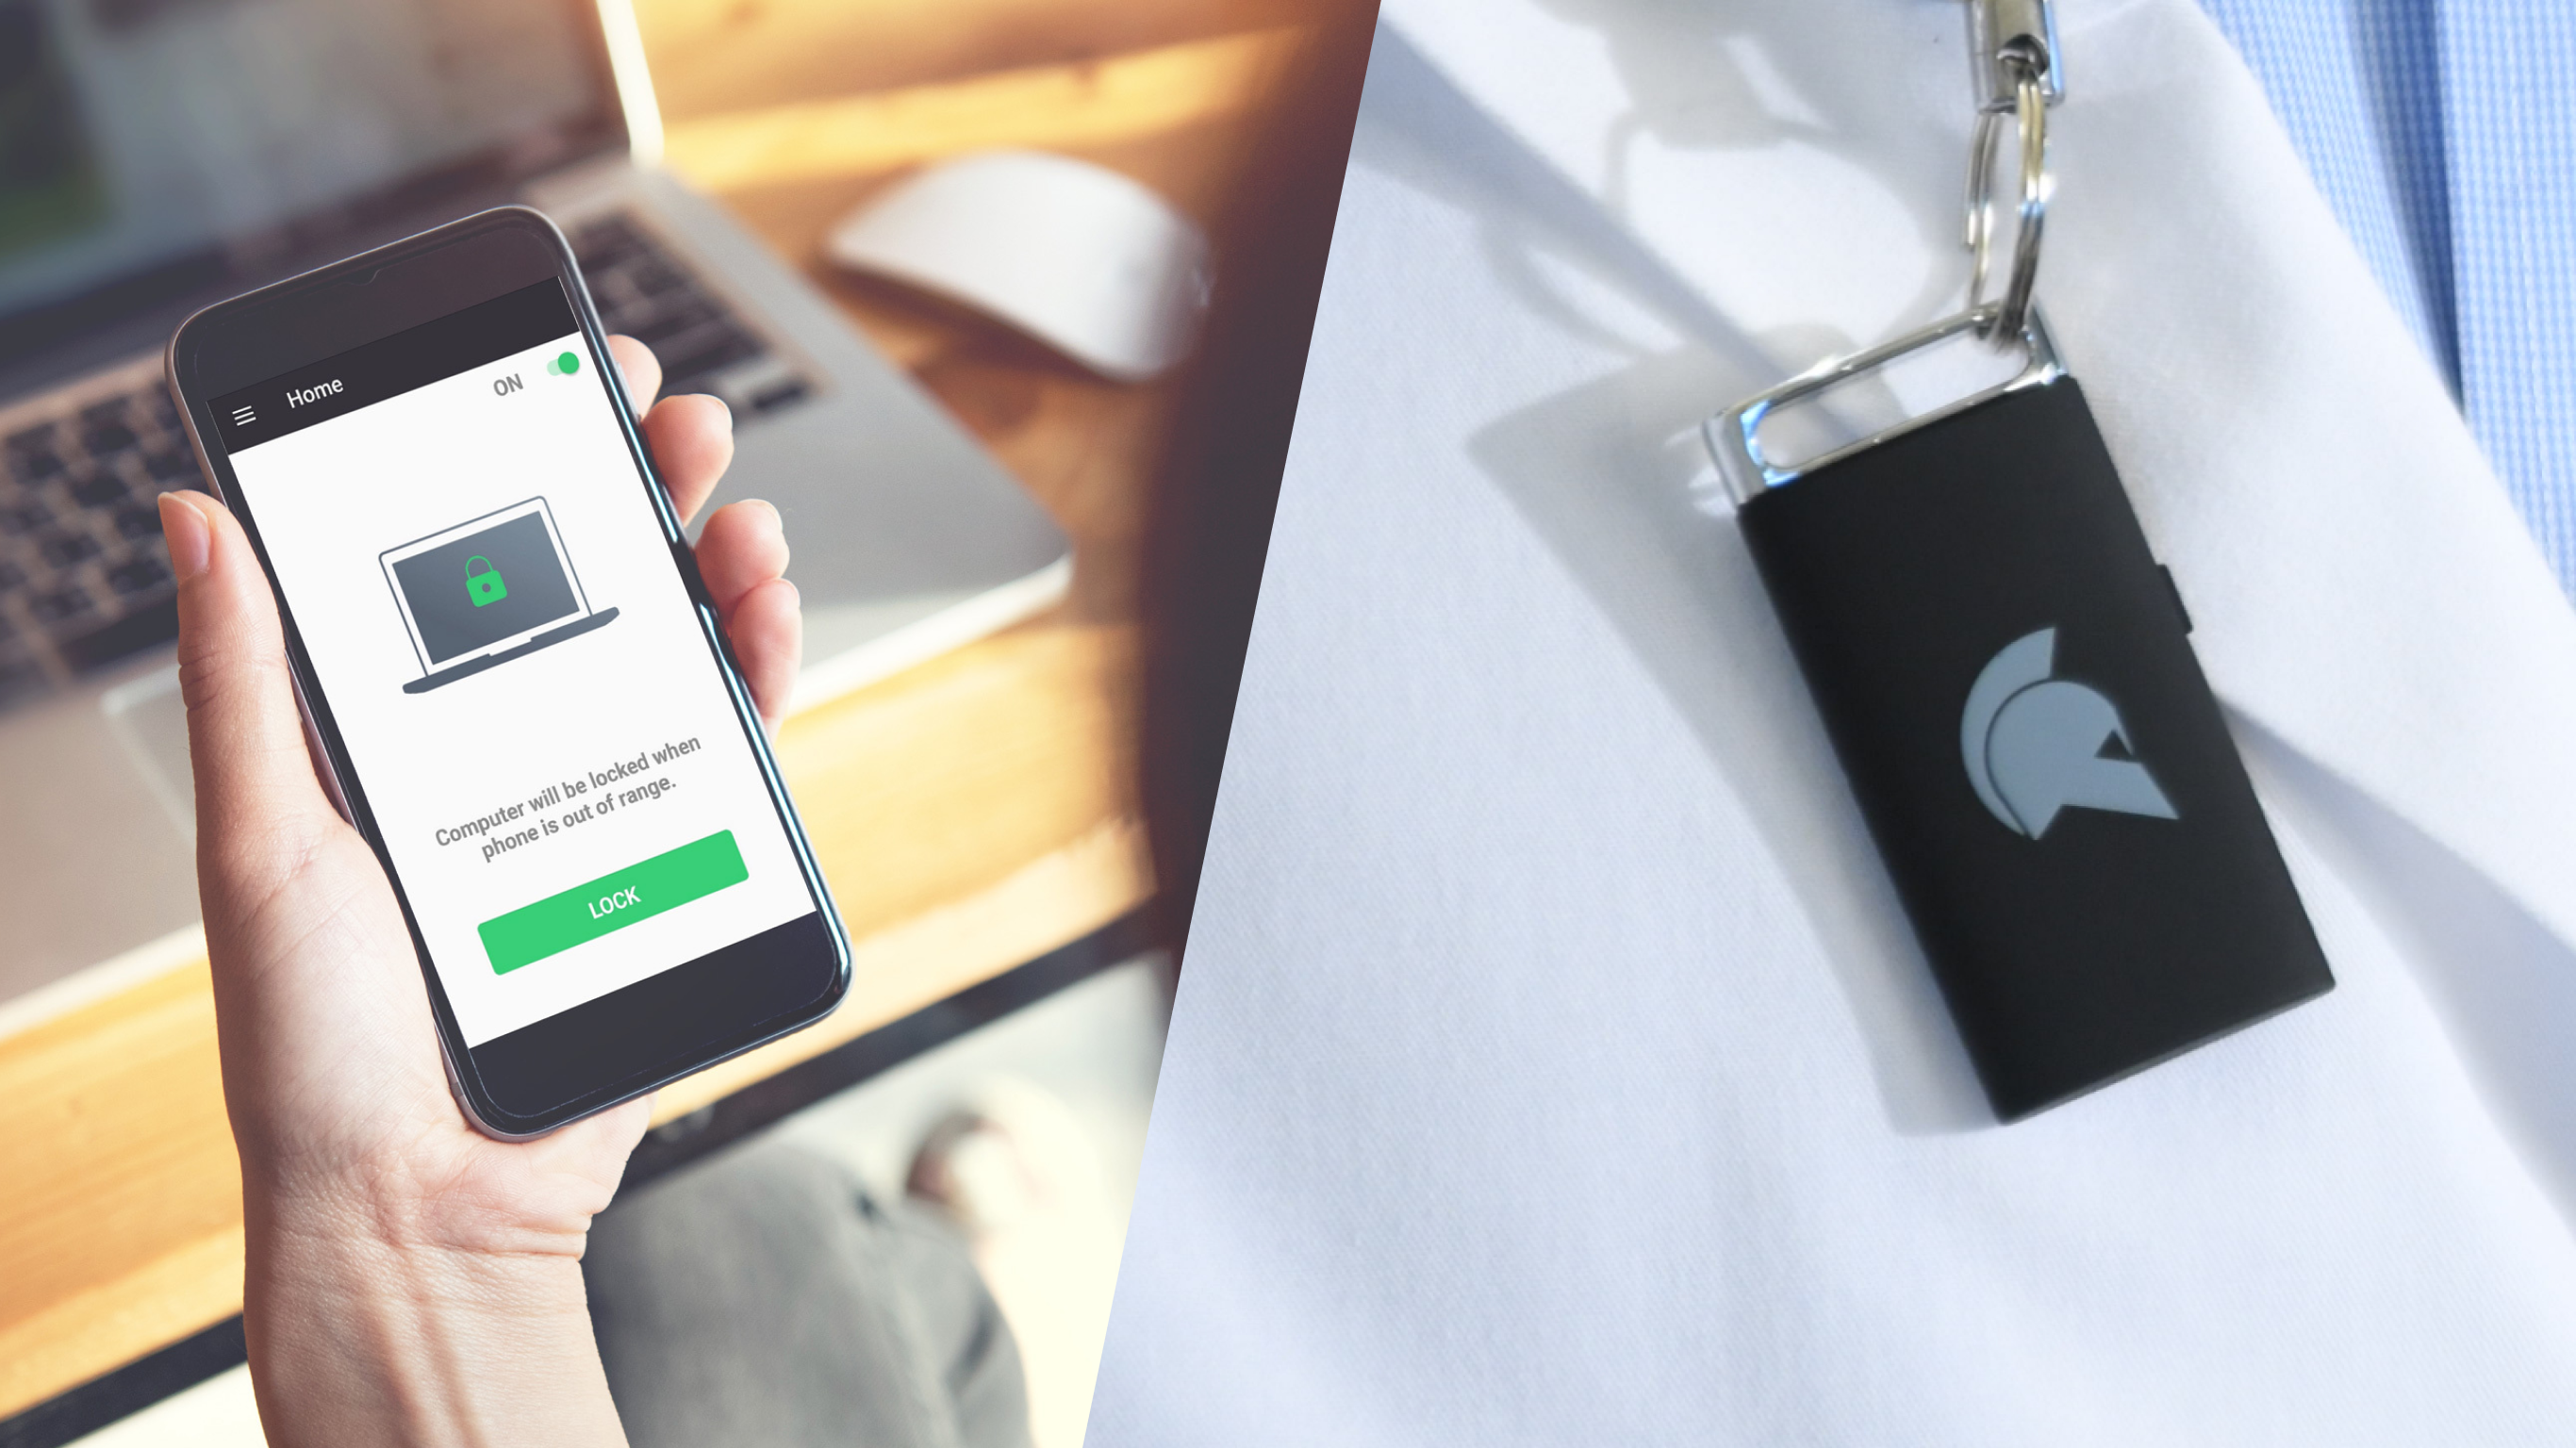 Faster and more secure 2FA account login and computer login. Use your phone as your wireless password token. You can also use a secure hardware token to login to accounts. Passwordless login reduces password stress and authentication errors.